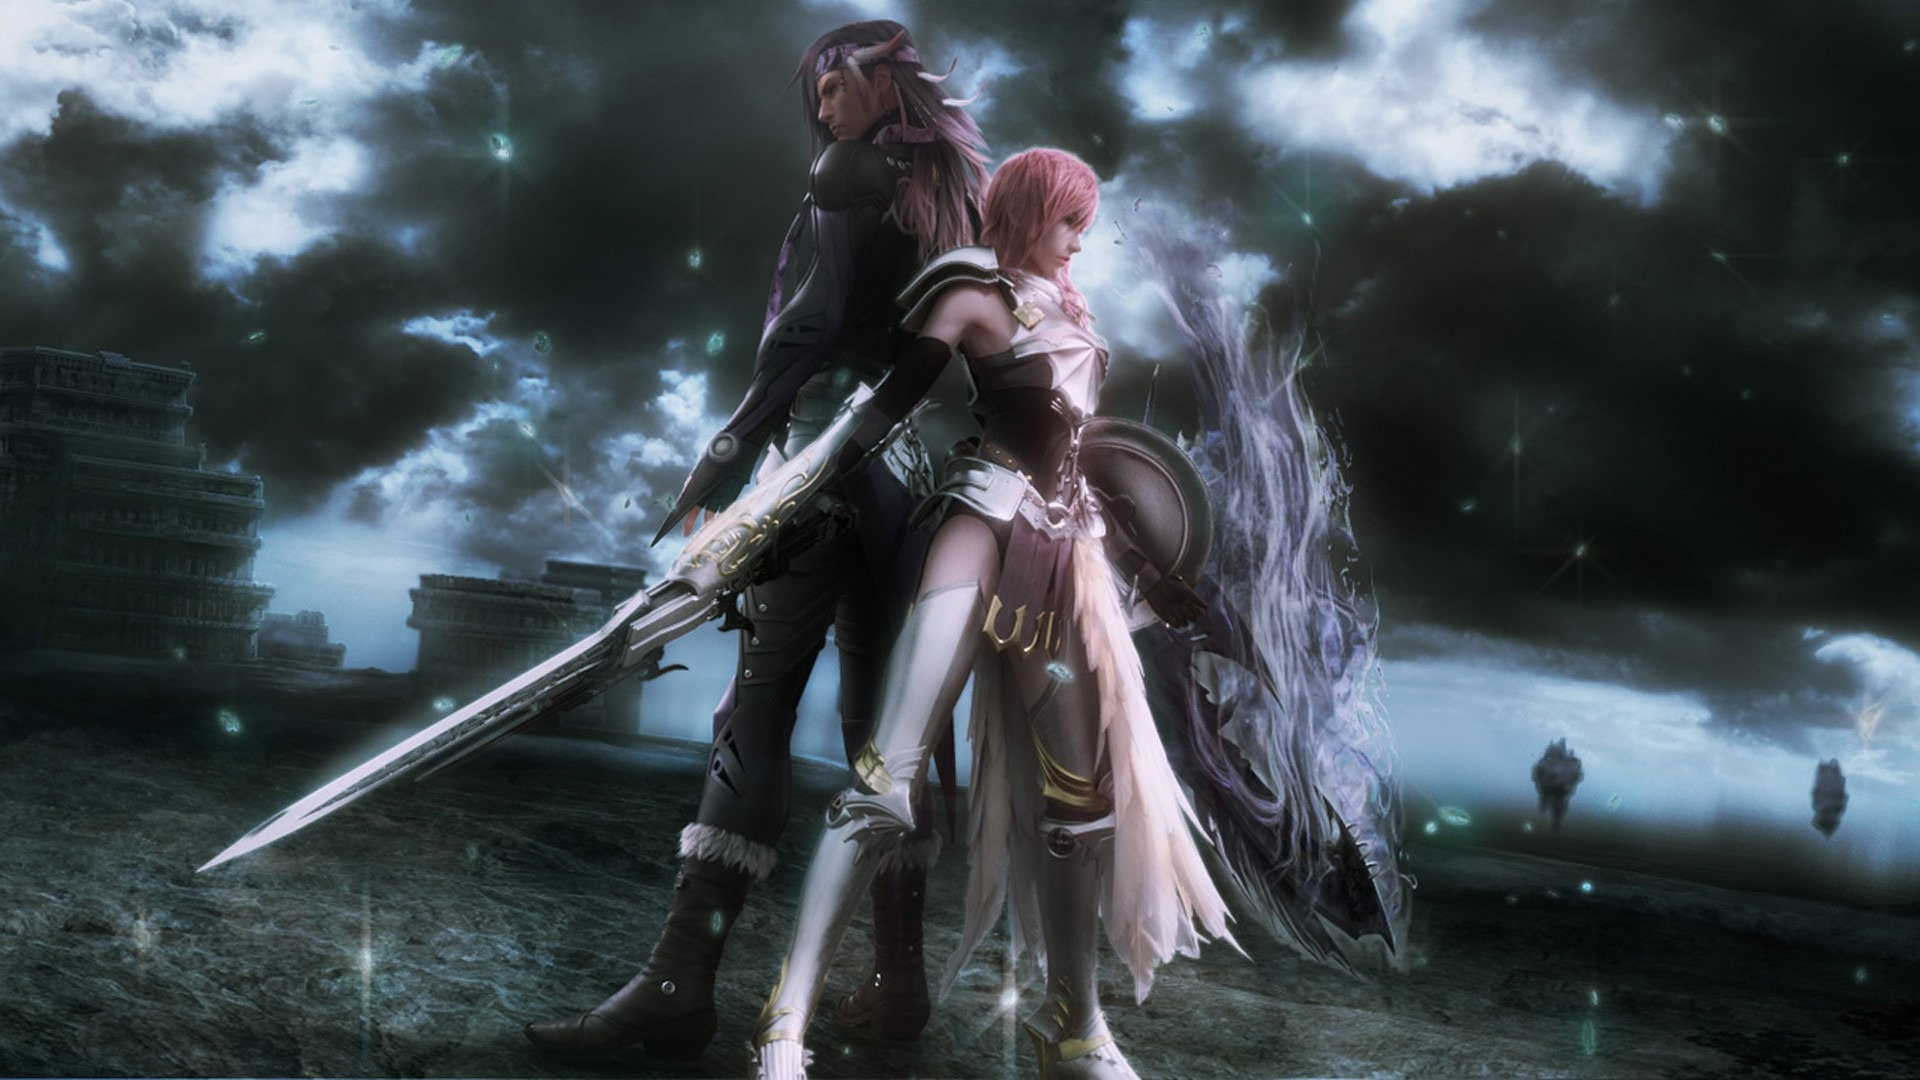 Final Fantasy XIII 2 Wallpapers Downloads inMotion Gaming 1920x1080